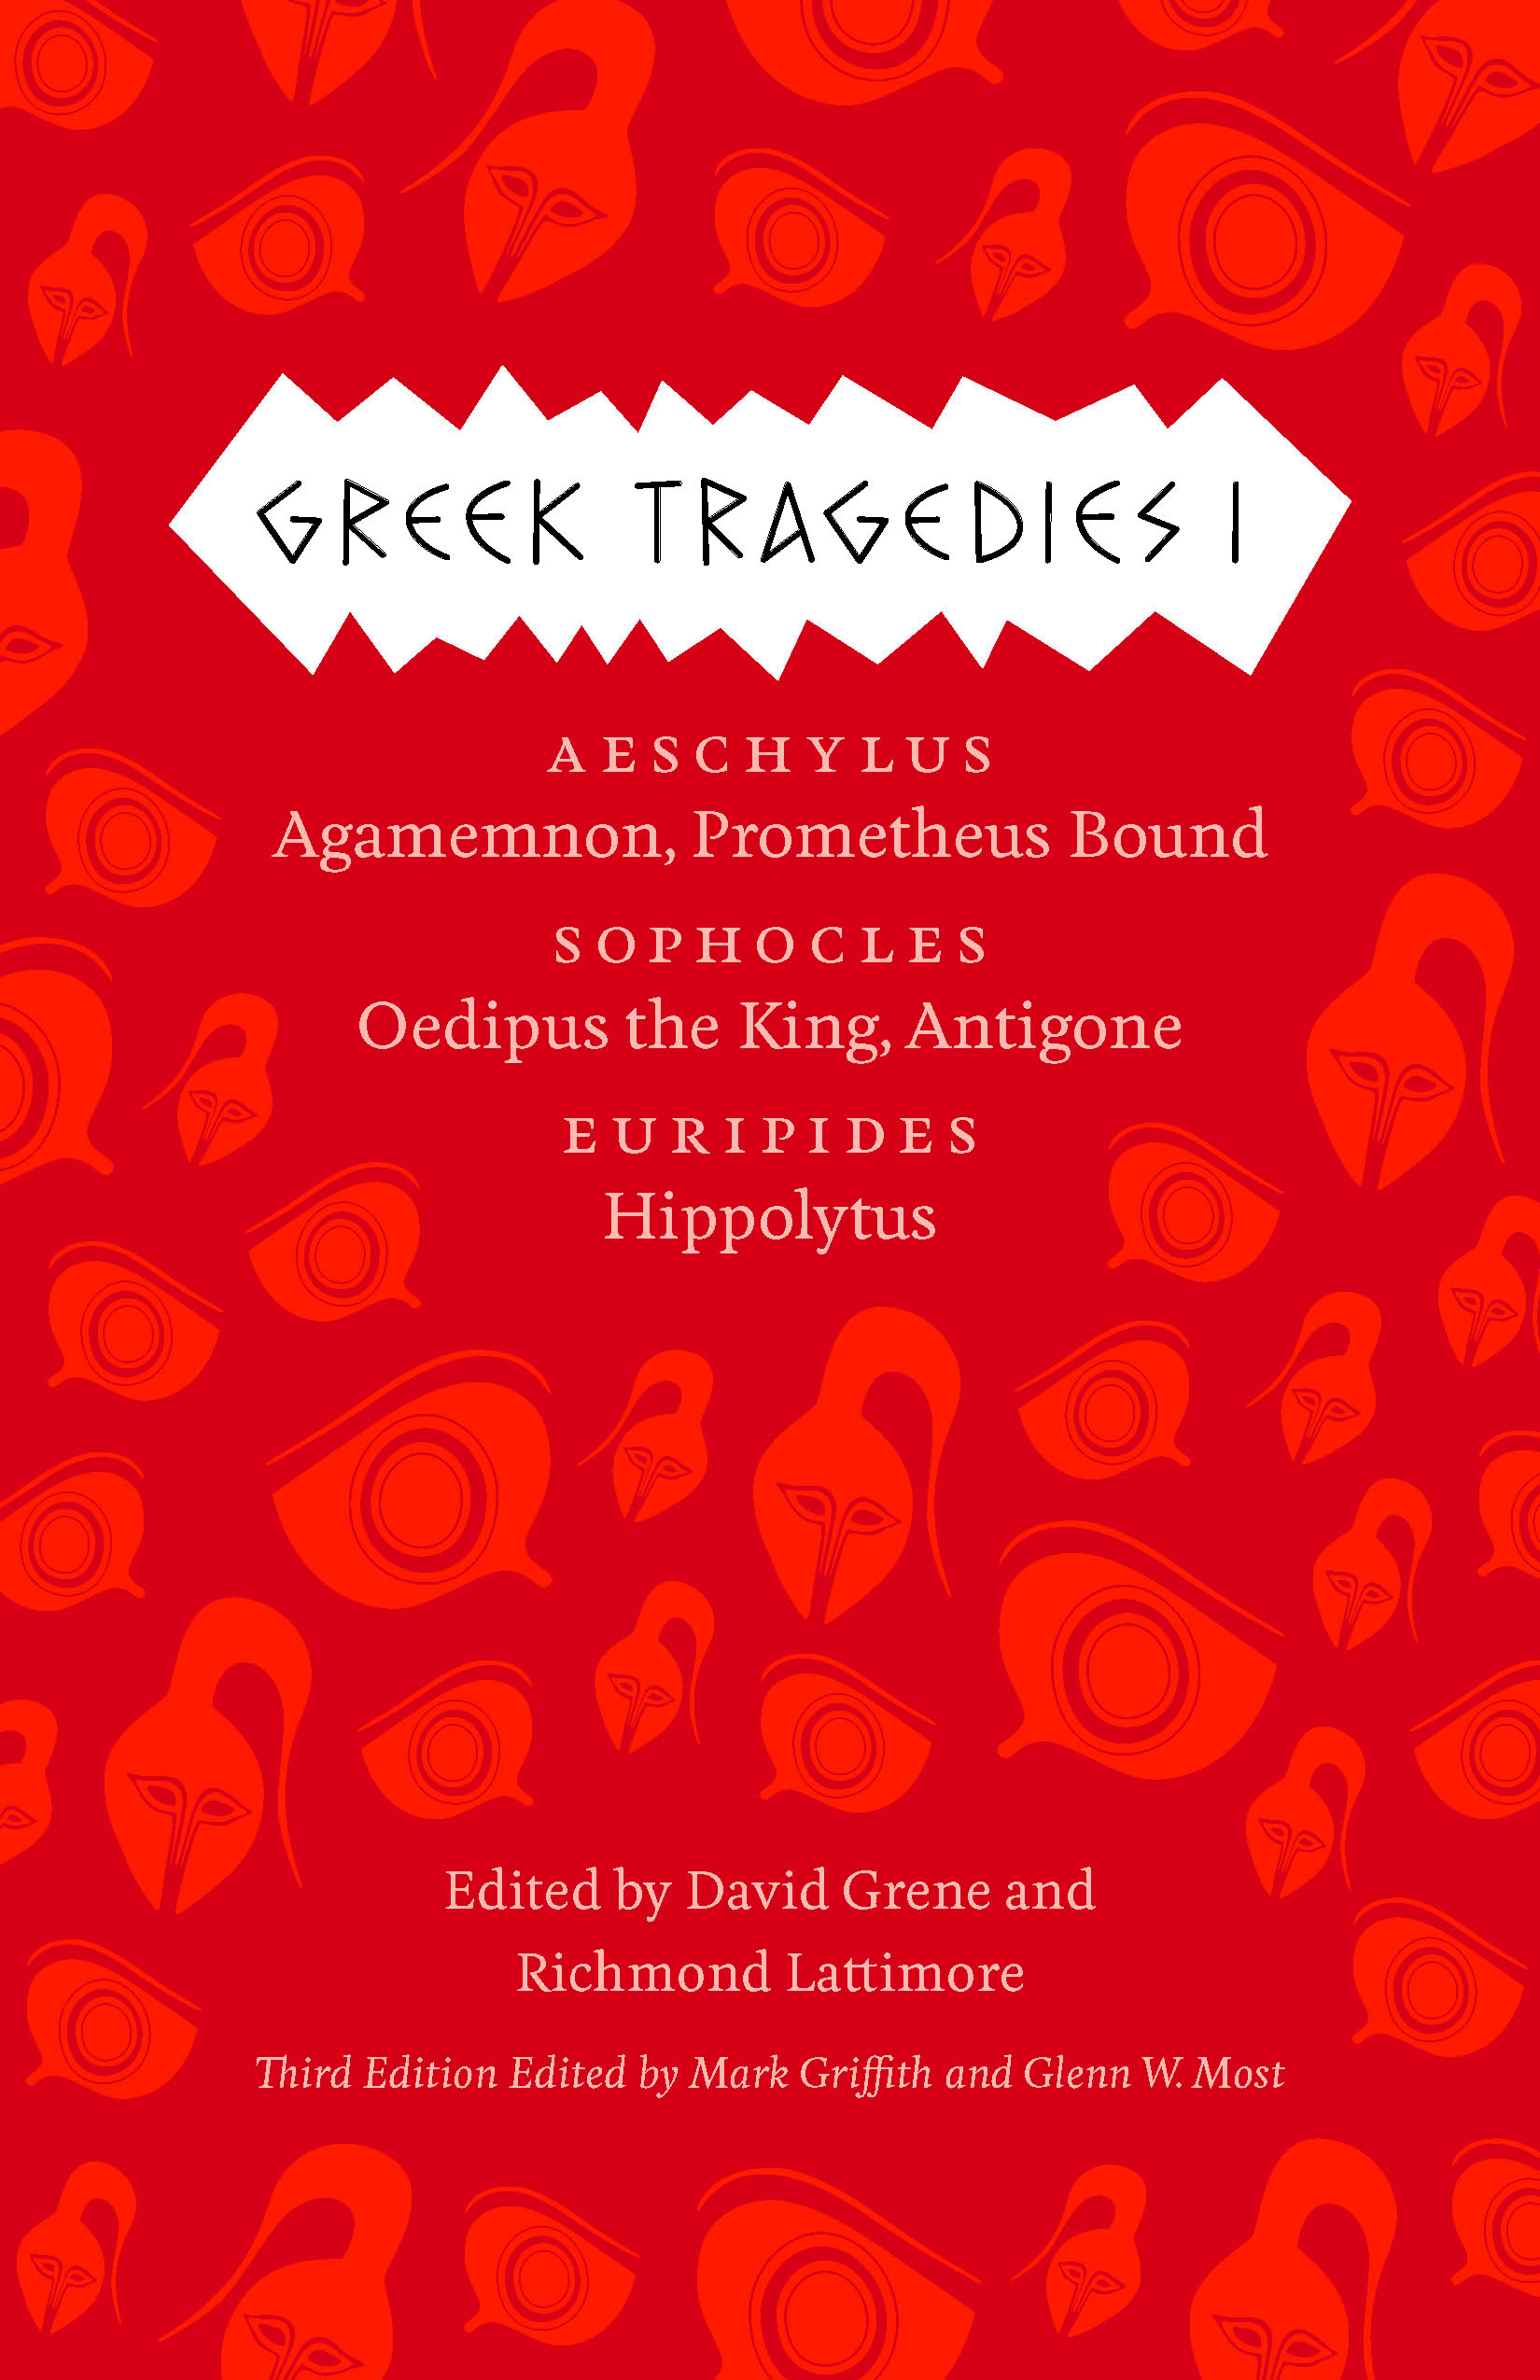 Greek Tragedies 1: Aeschylus: Agamemnon, Prometheus Bound